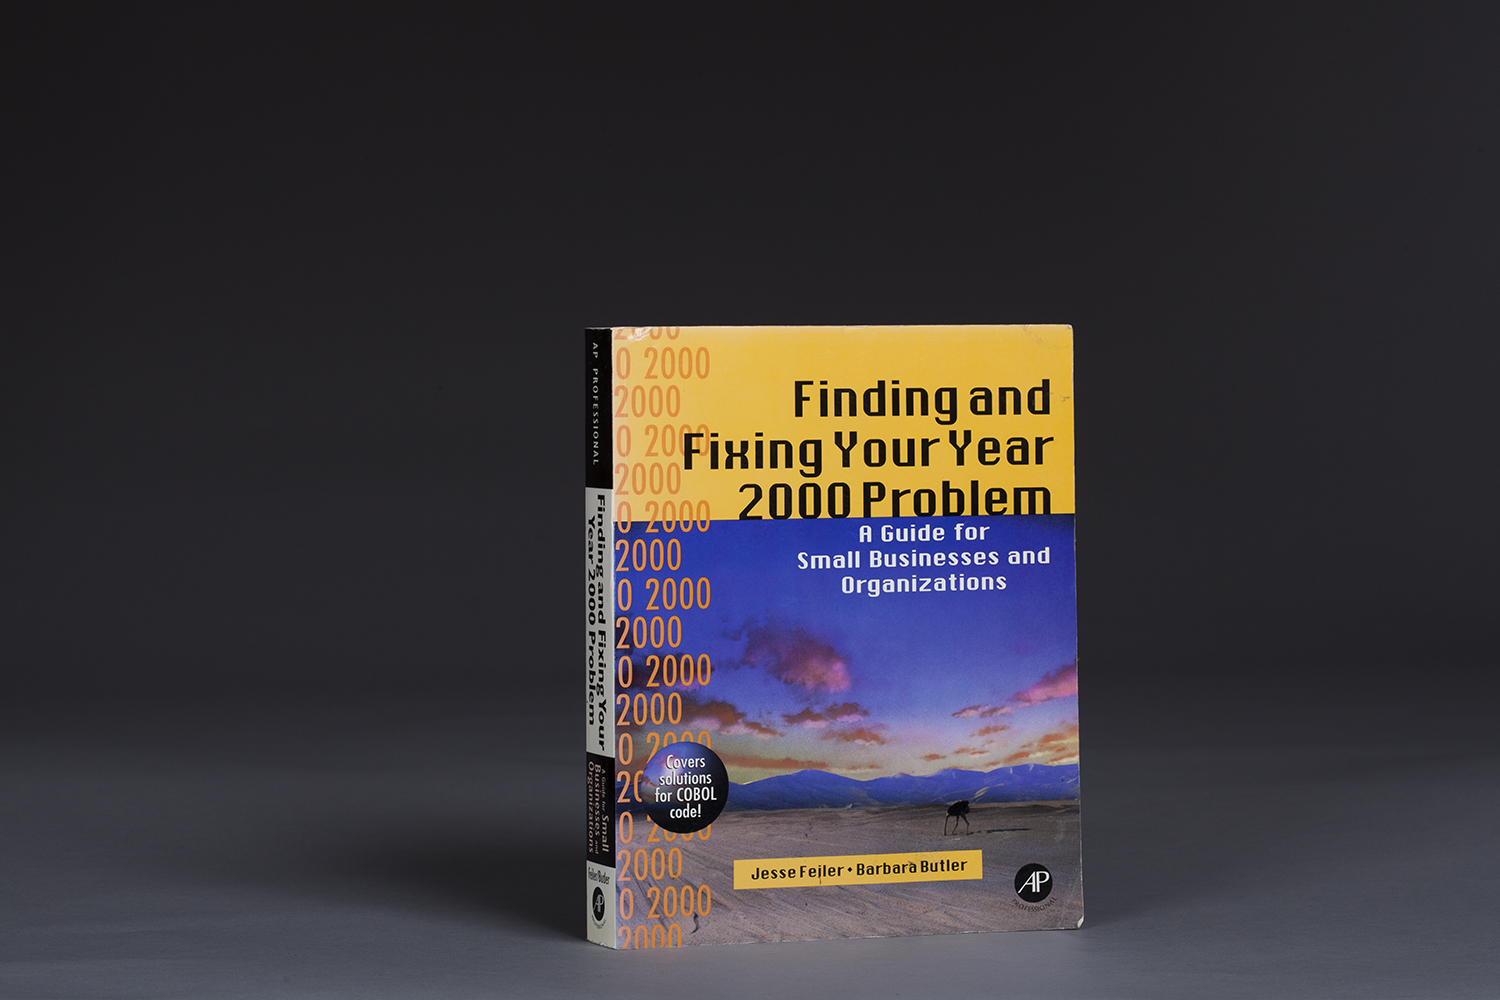 Finding and Fixing Your Year 2000 Problem - 0101 Cover.jpg